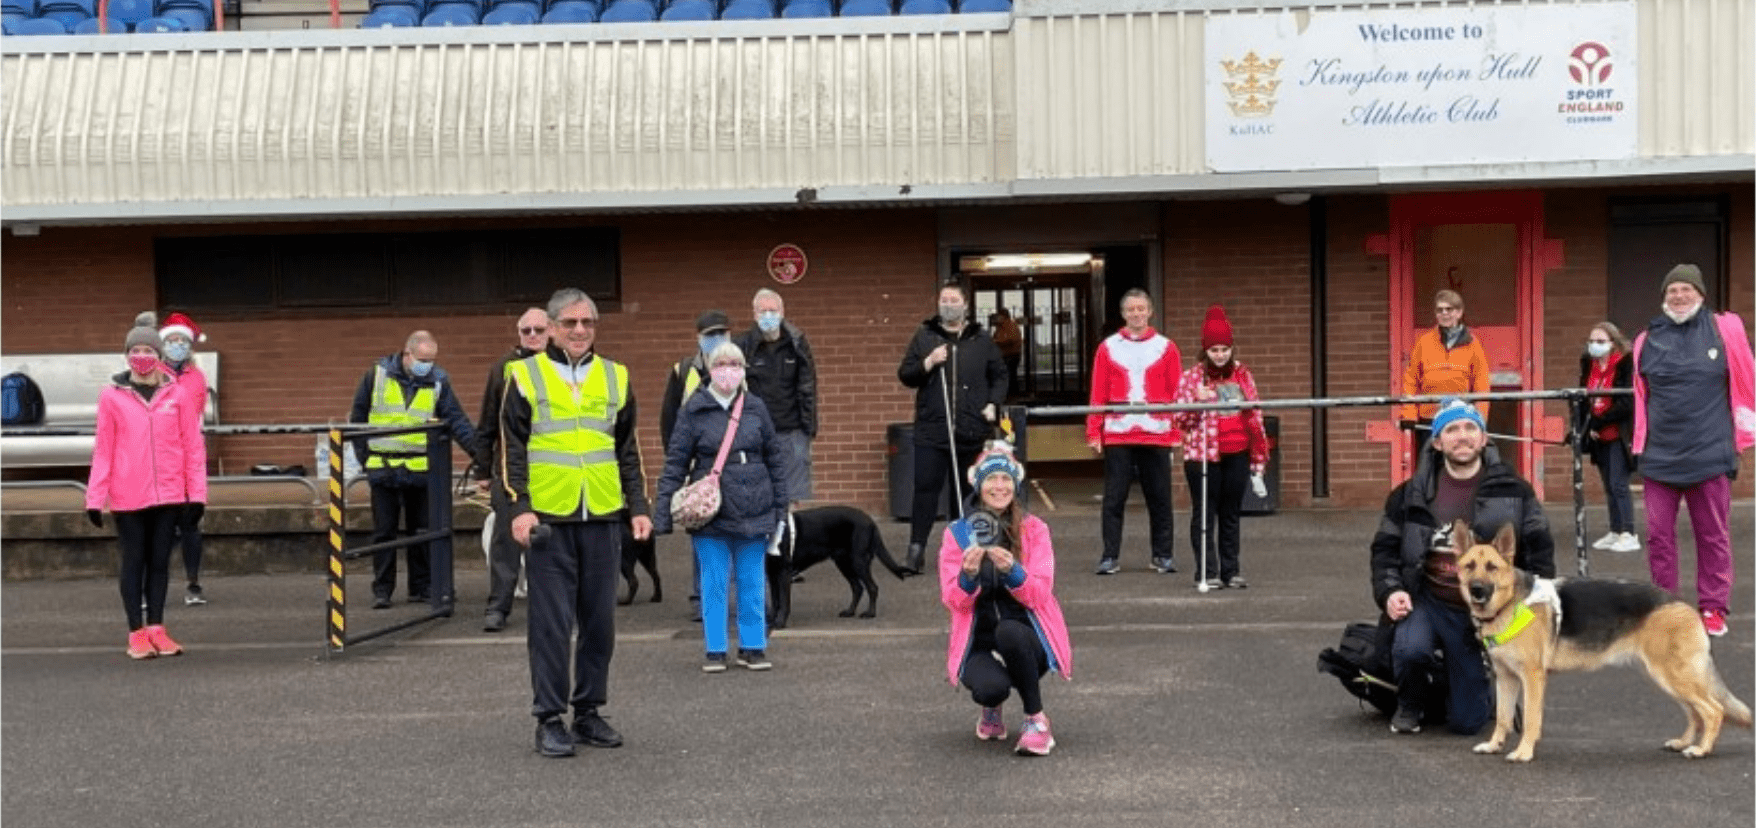 group picture of people with their guide dogs and walking canes